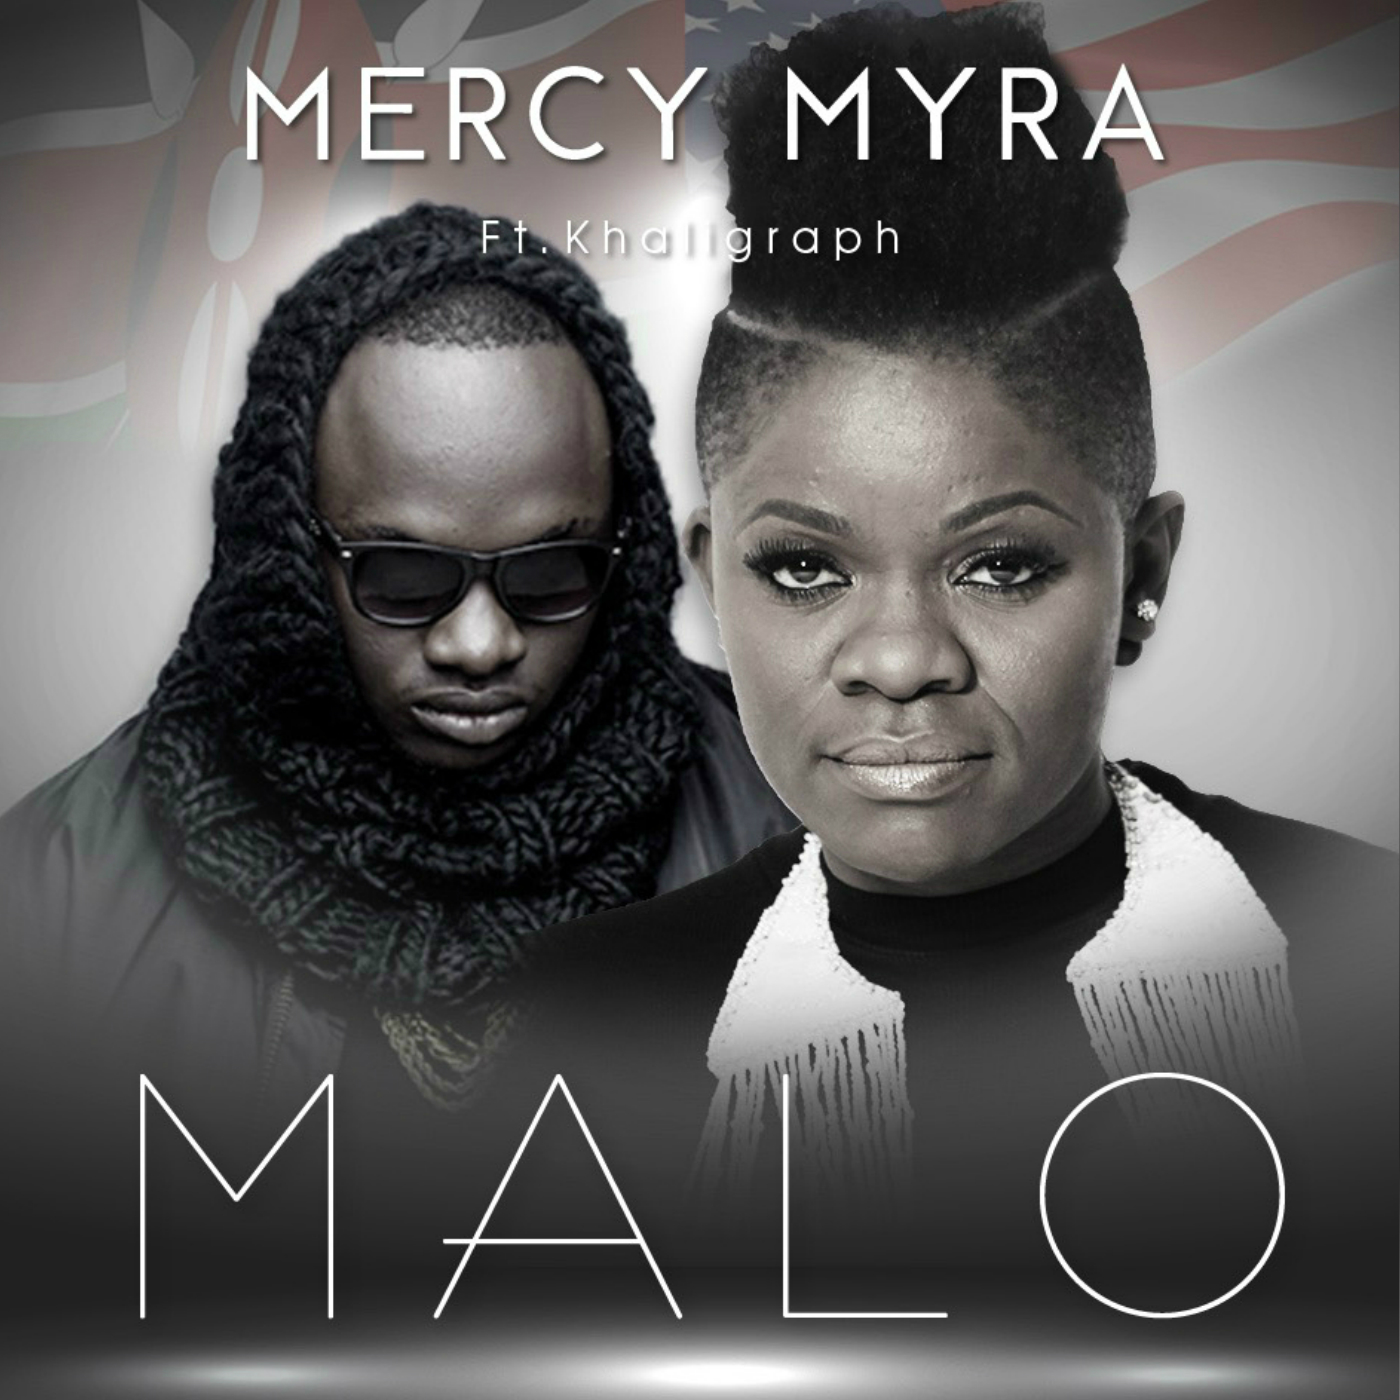 MALO iTUNES ALBUM COVER.jpg